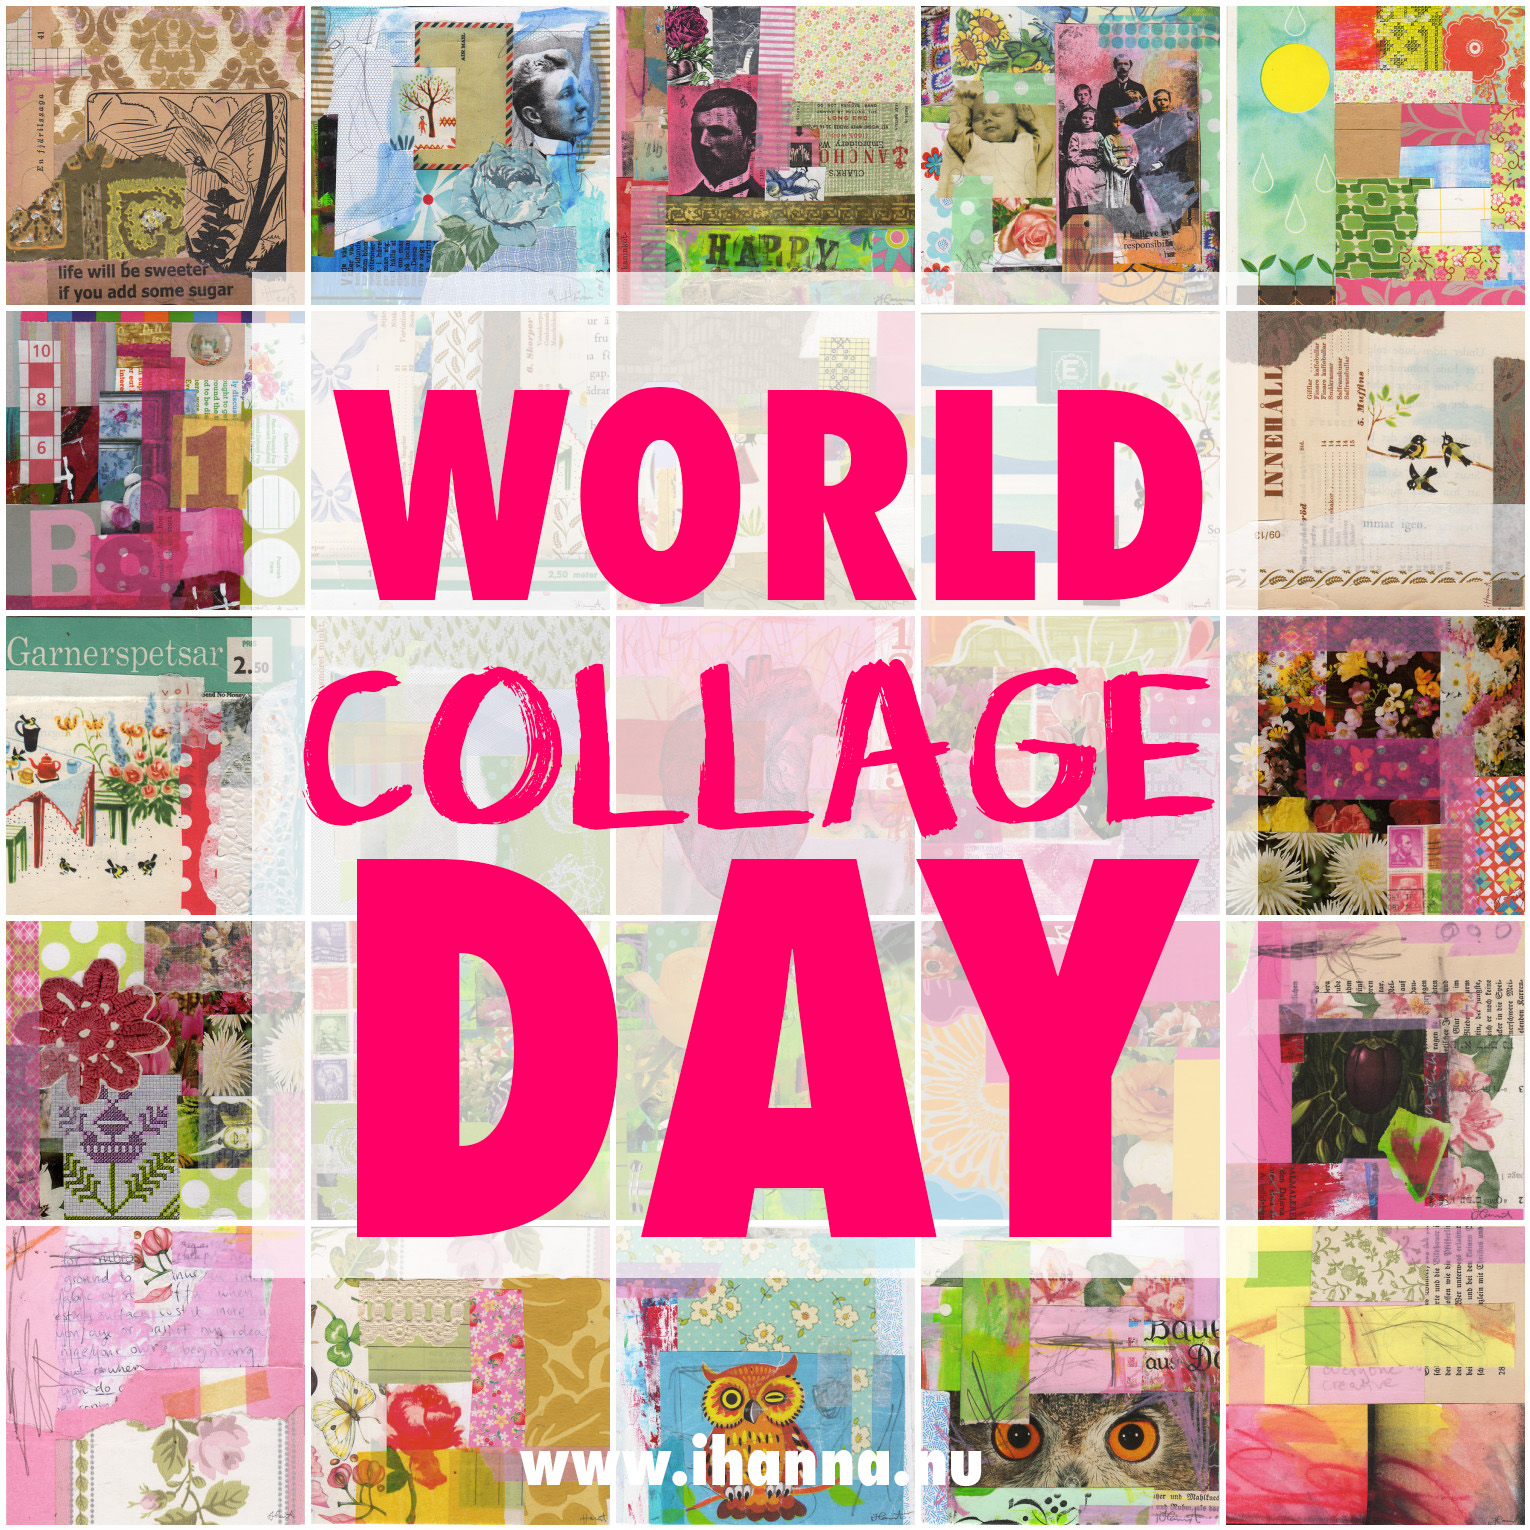 World Collage Day is in May